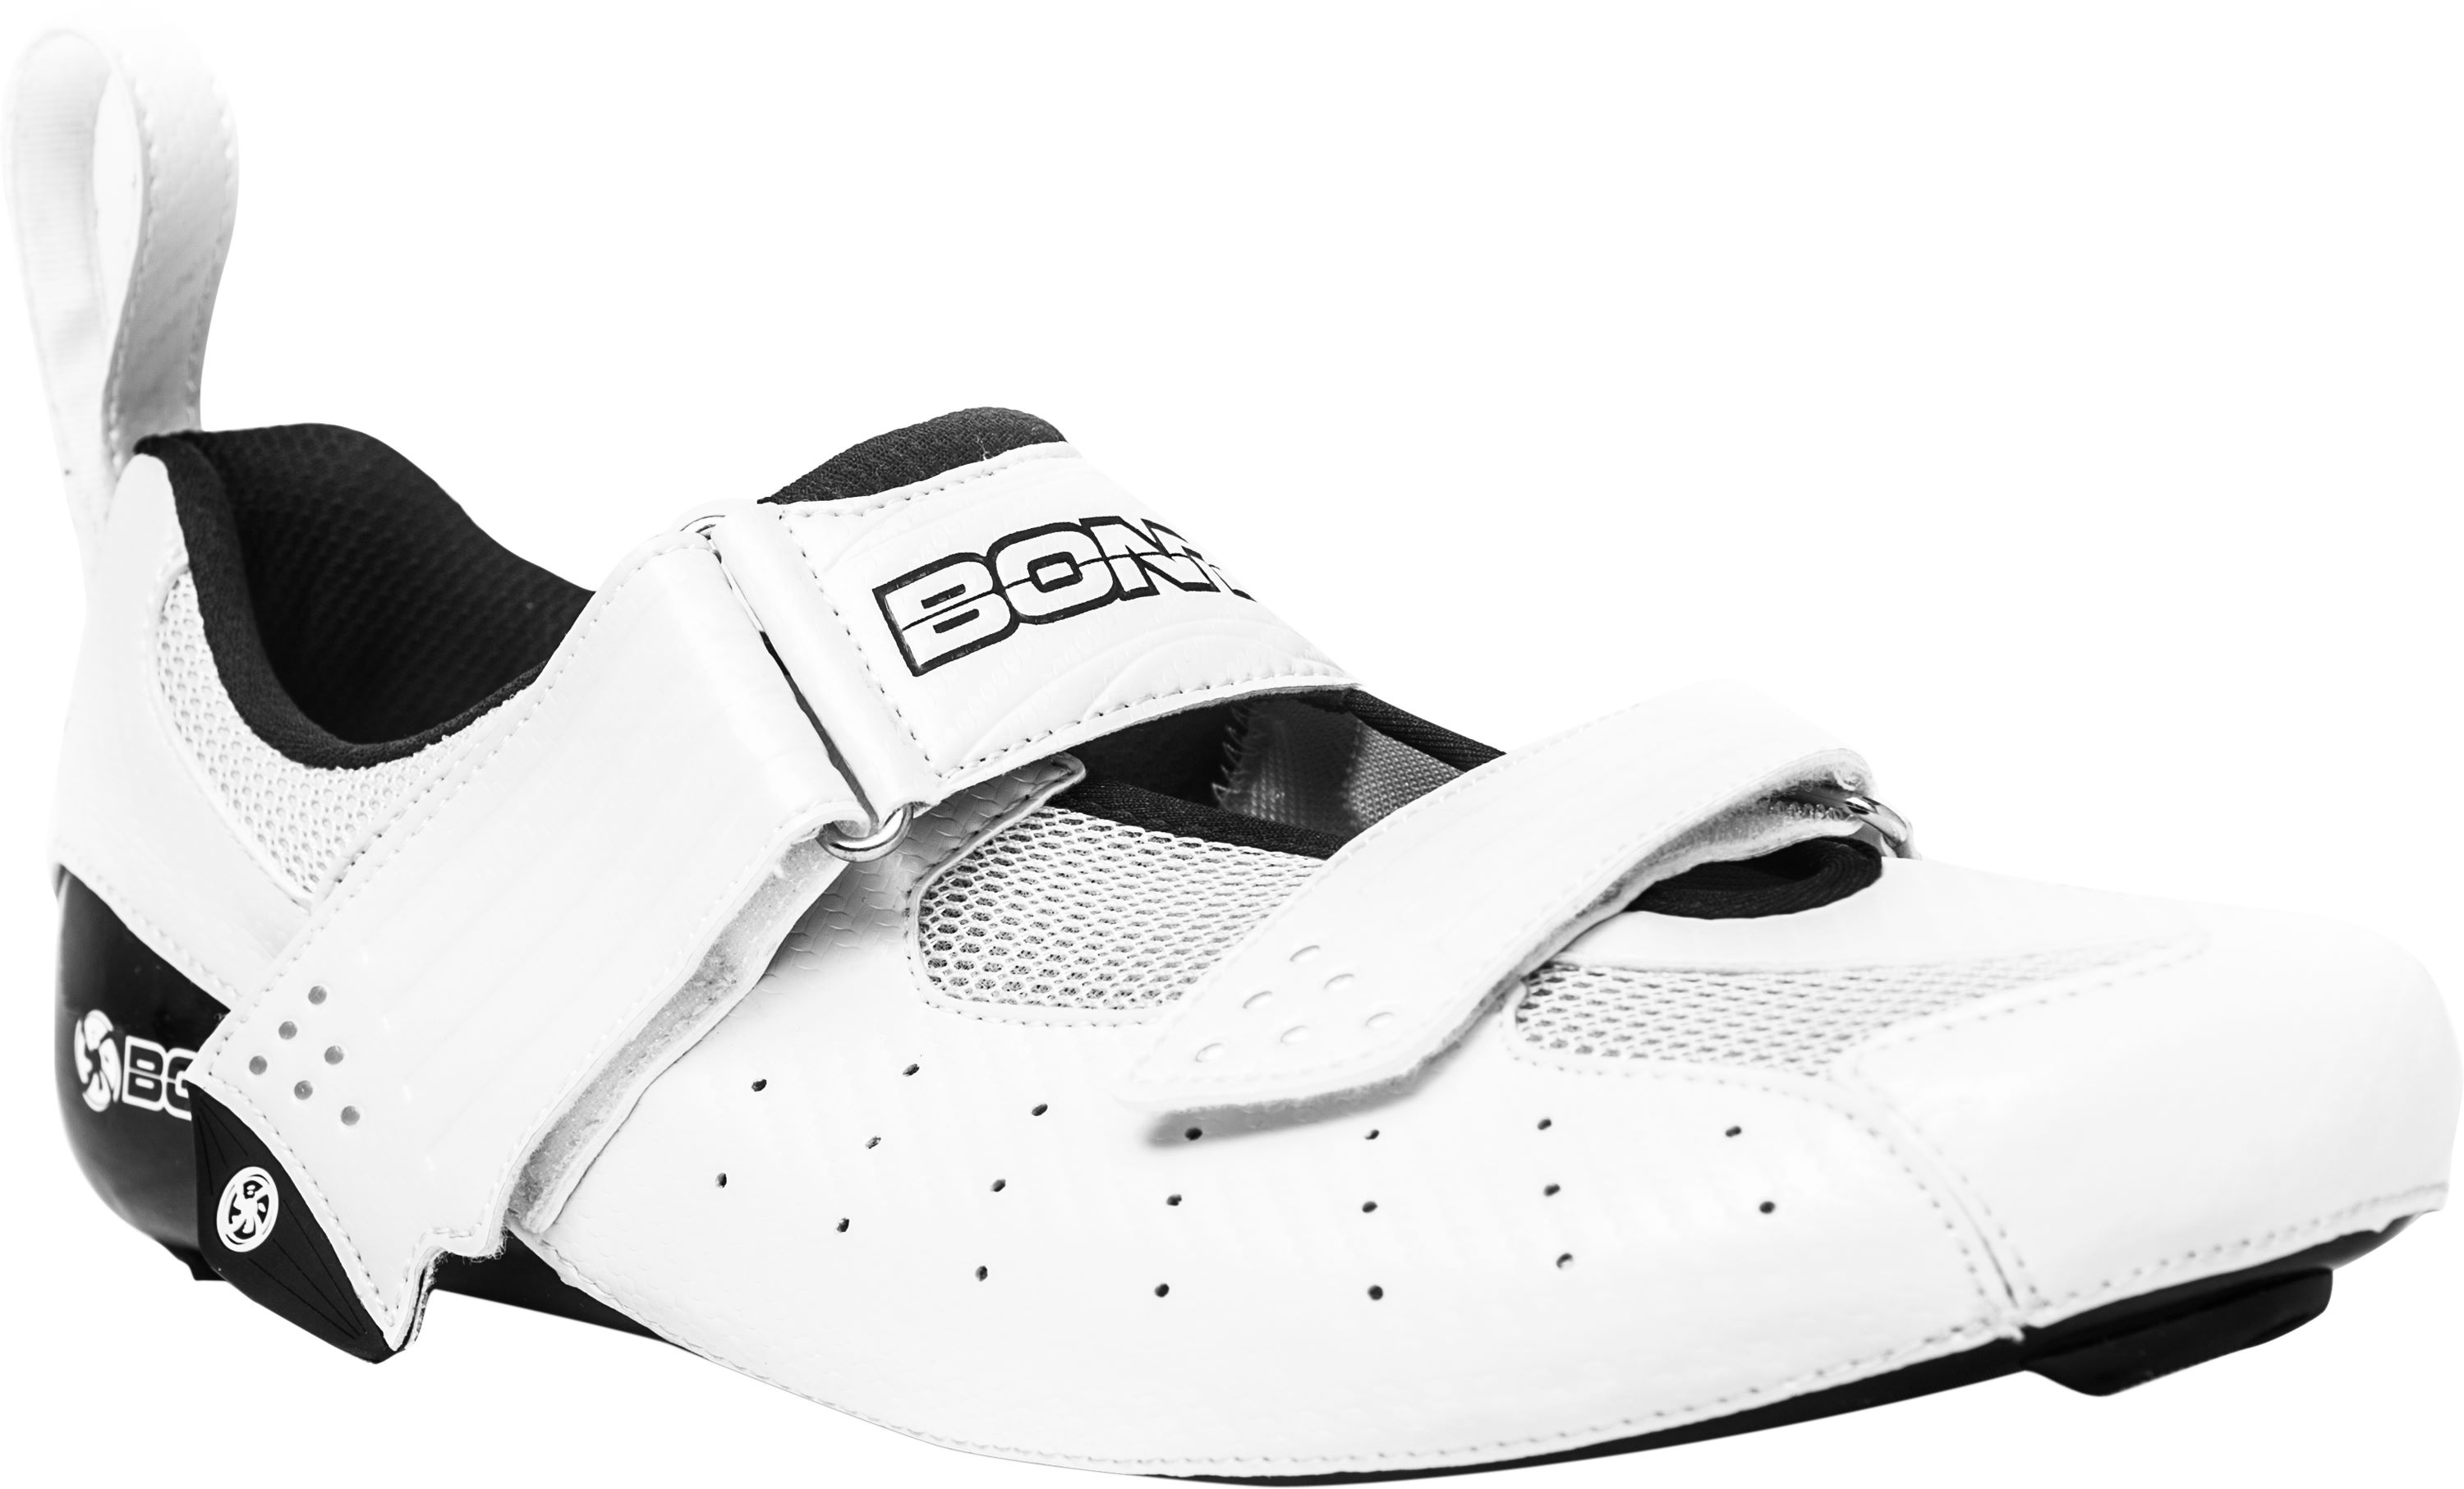 Bont Riot Tri Shoe (Asian Fit) | Shoes and overlays